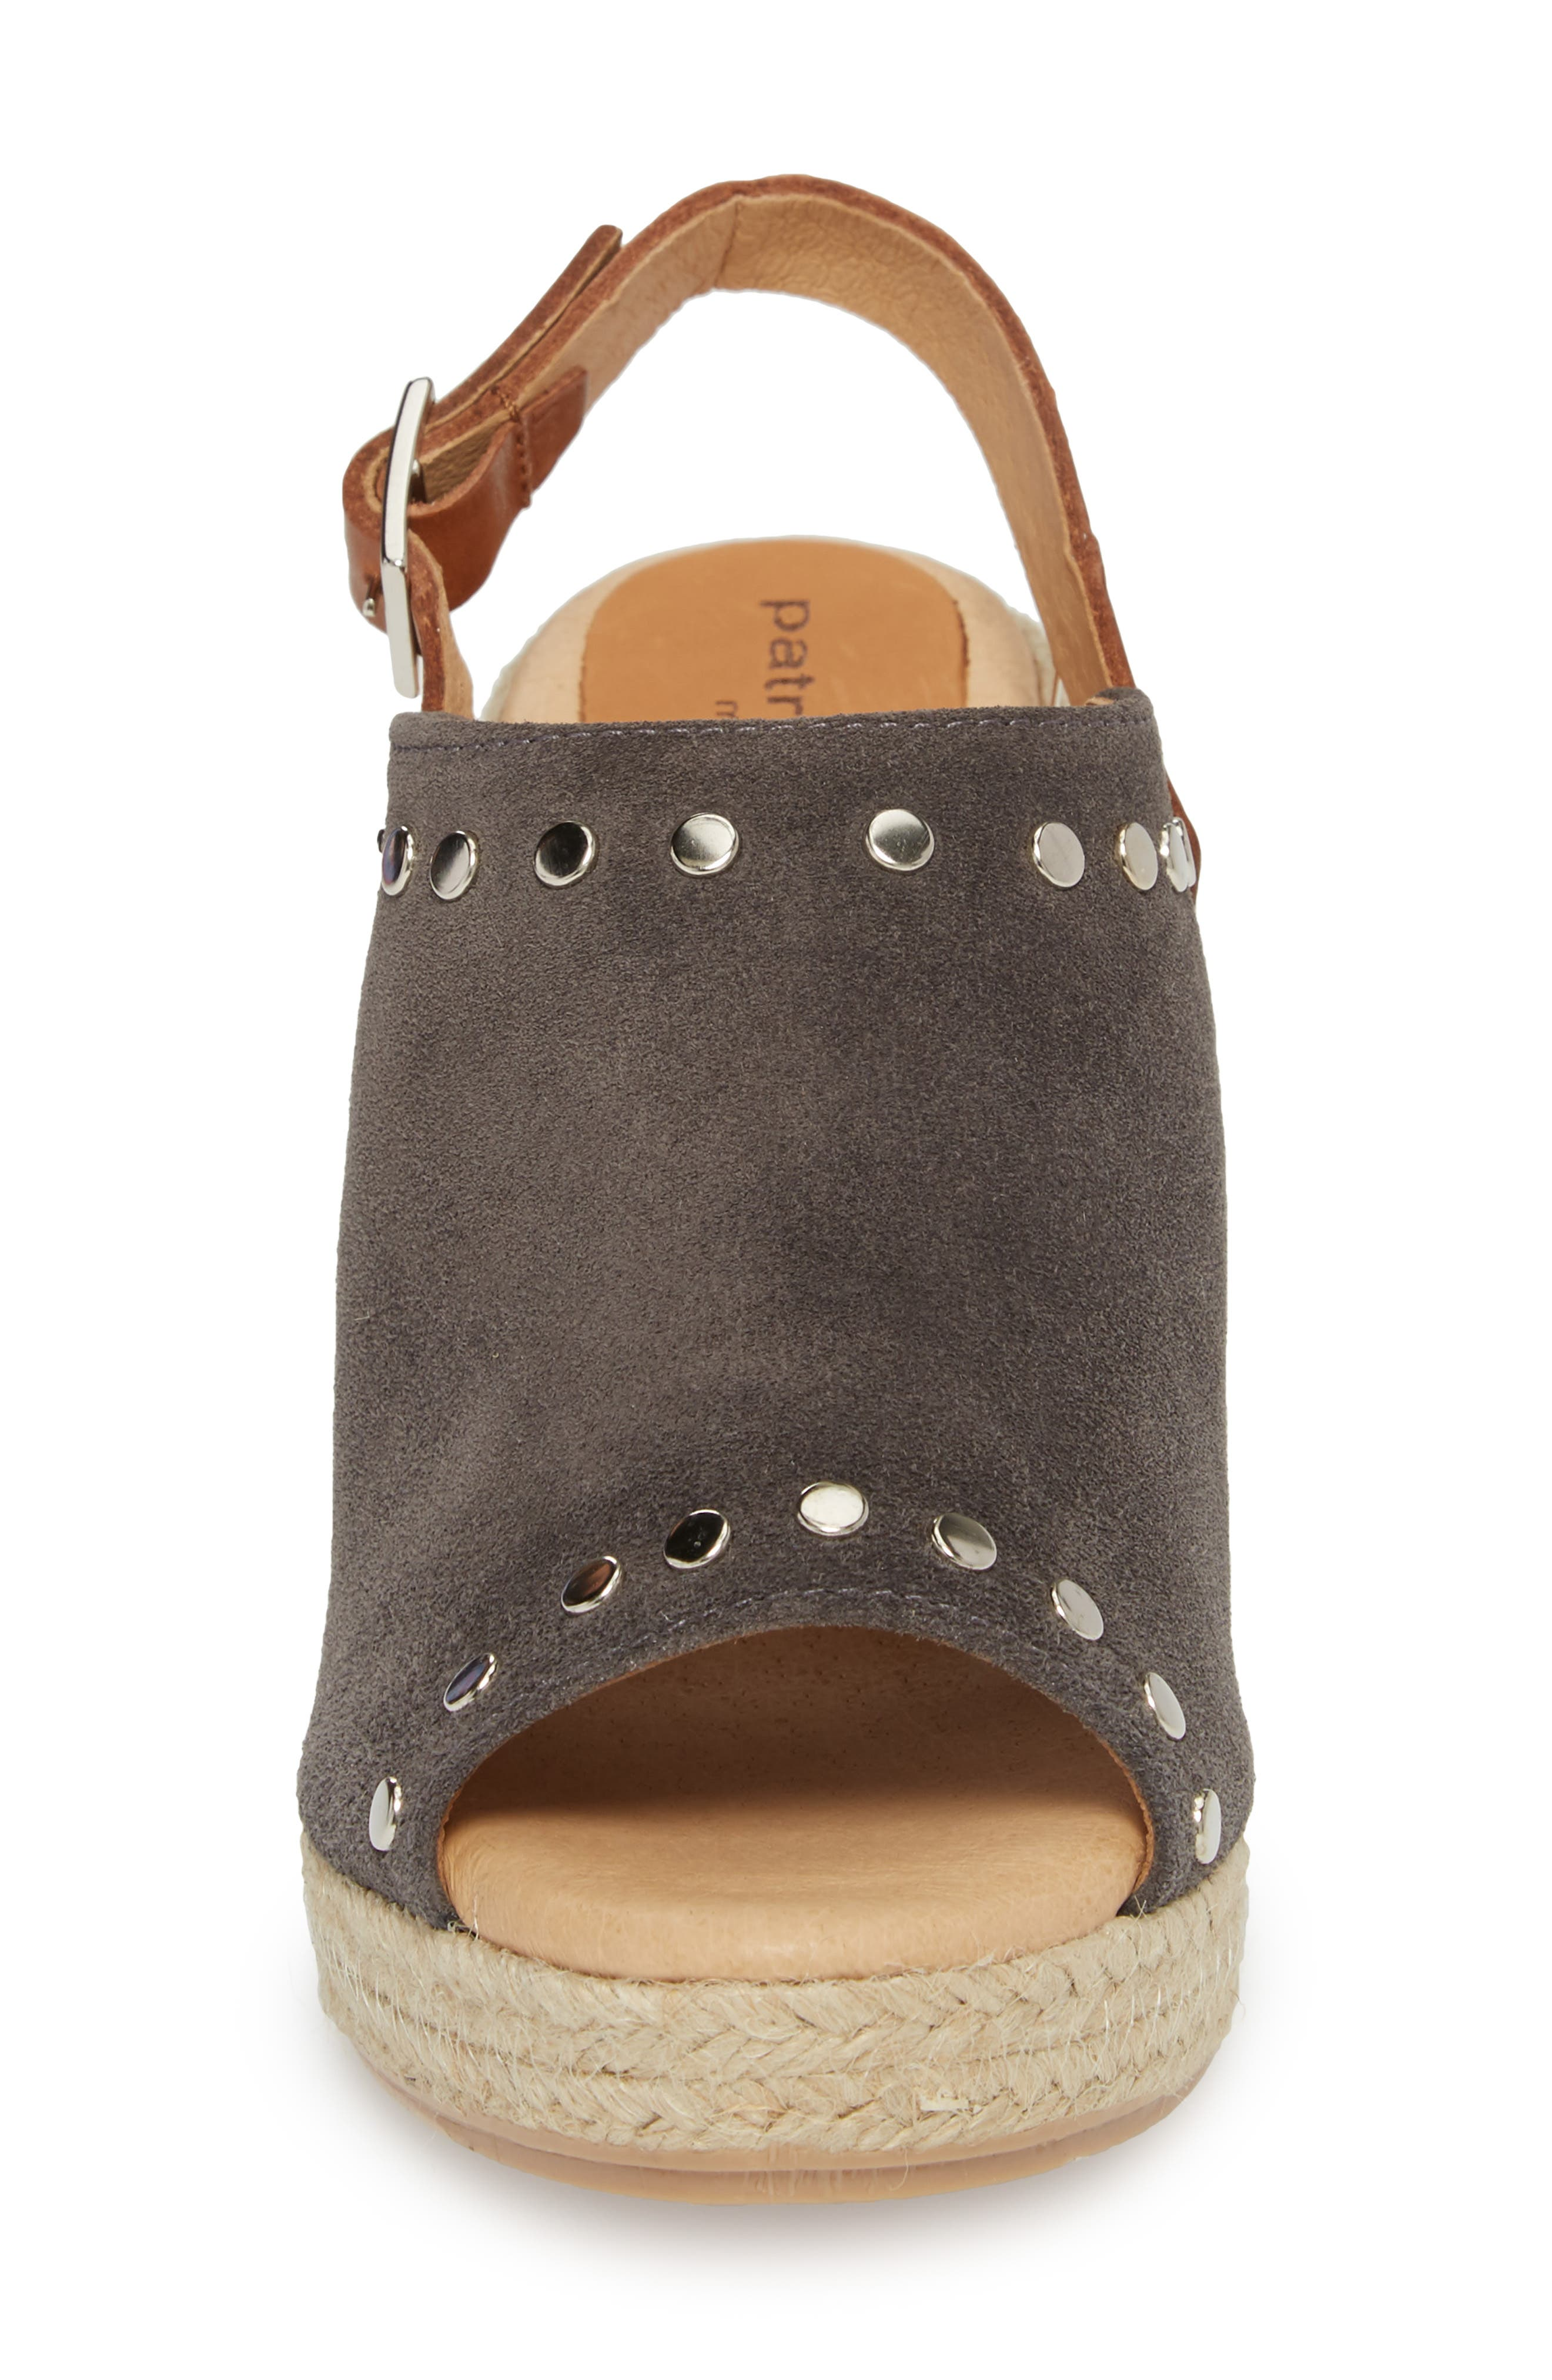 Rockstar Espadrille Wedge Sandal,                             Alternate thumbnail 4, color,                             CHARCOAL SUEDE